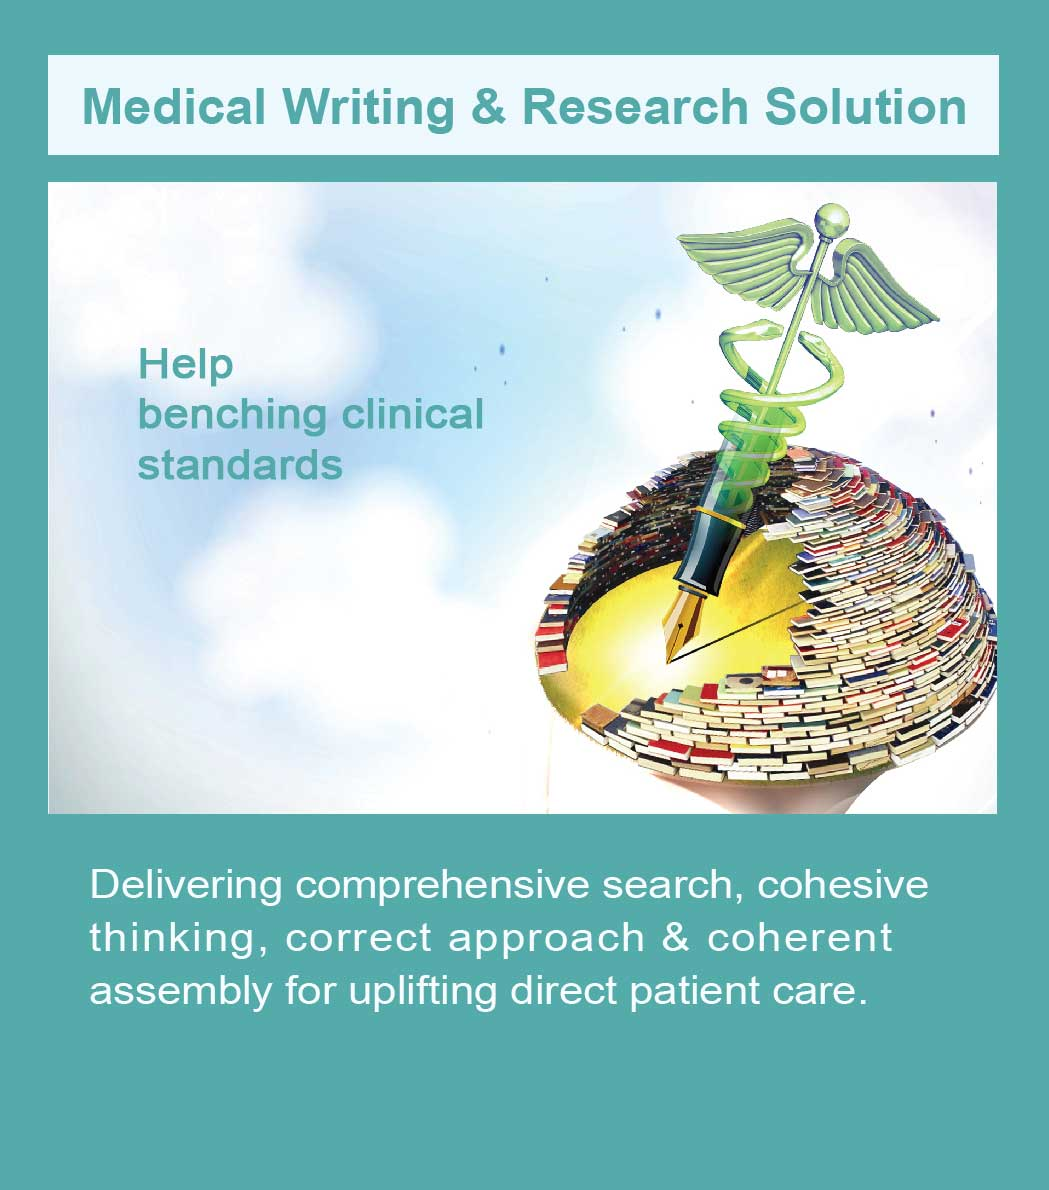 Medical Writing research Solution